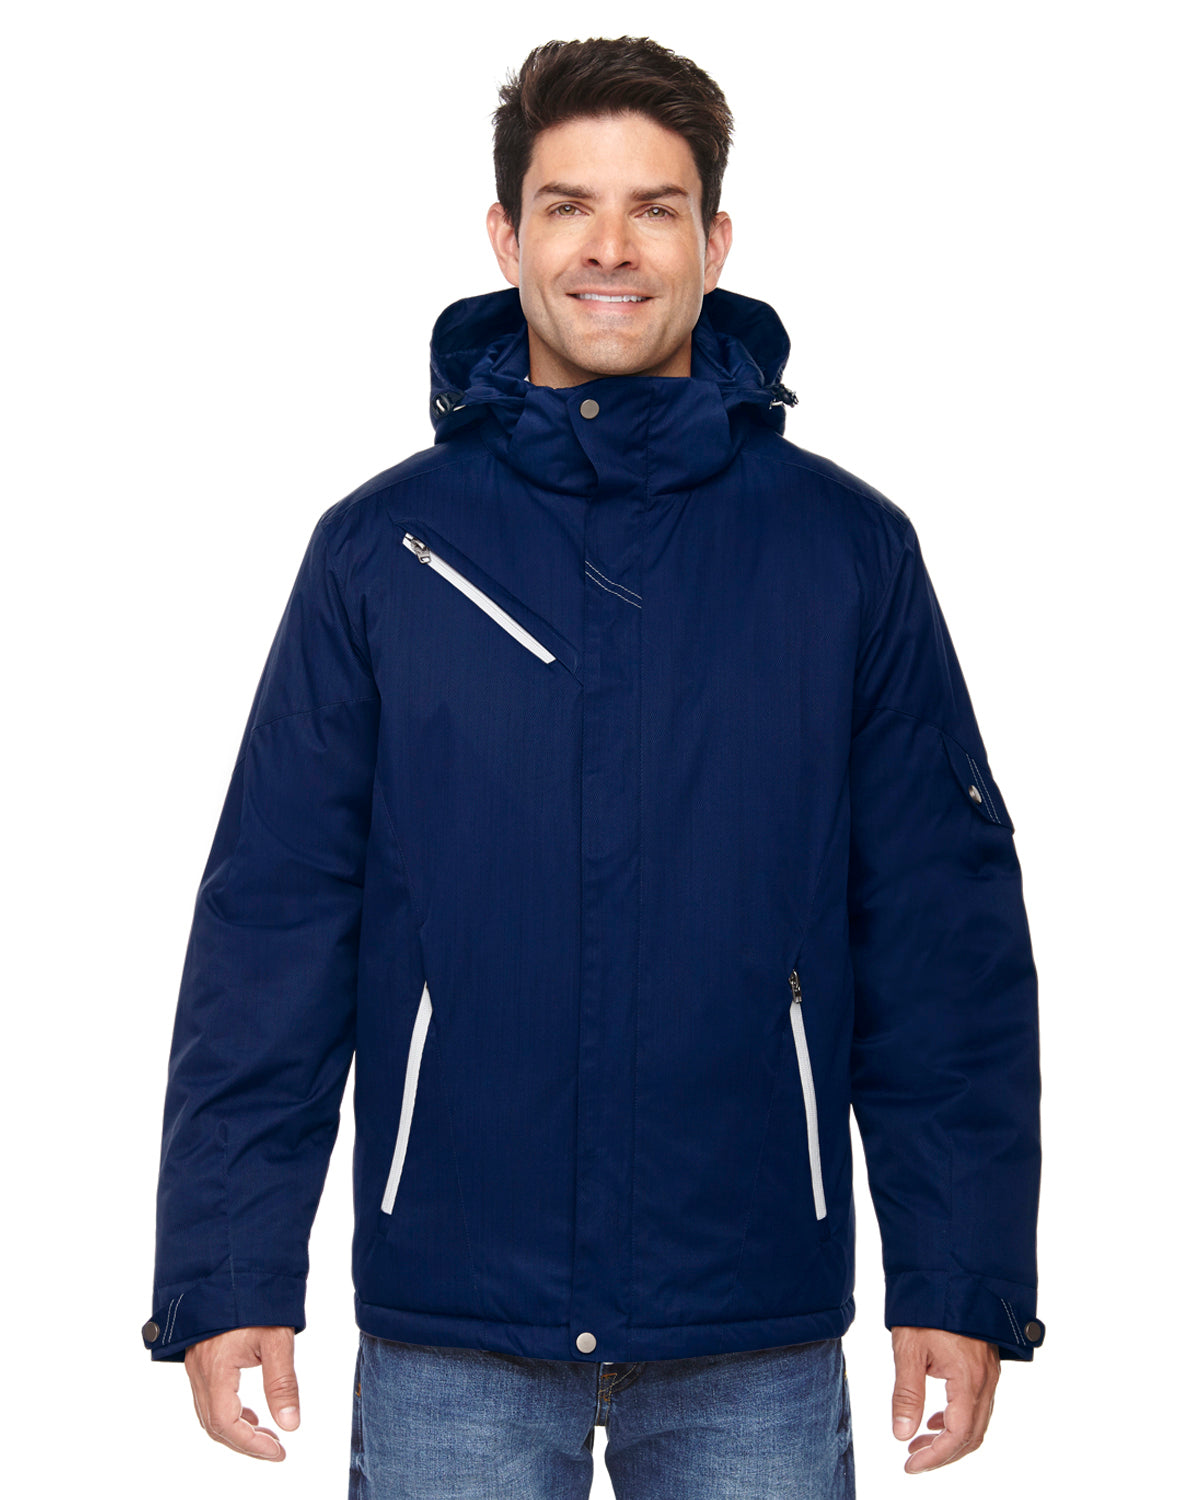 NORTH END MEN'S RIVET TEXTURED TWILL INSULATED JACKET